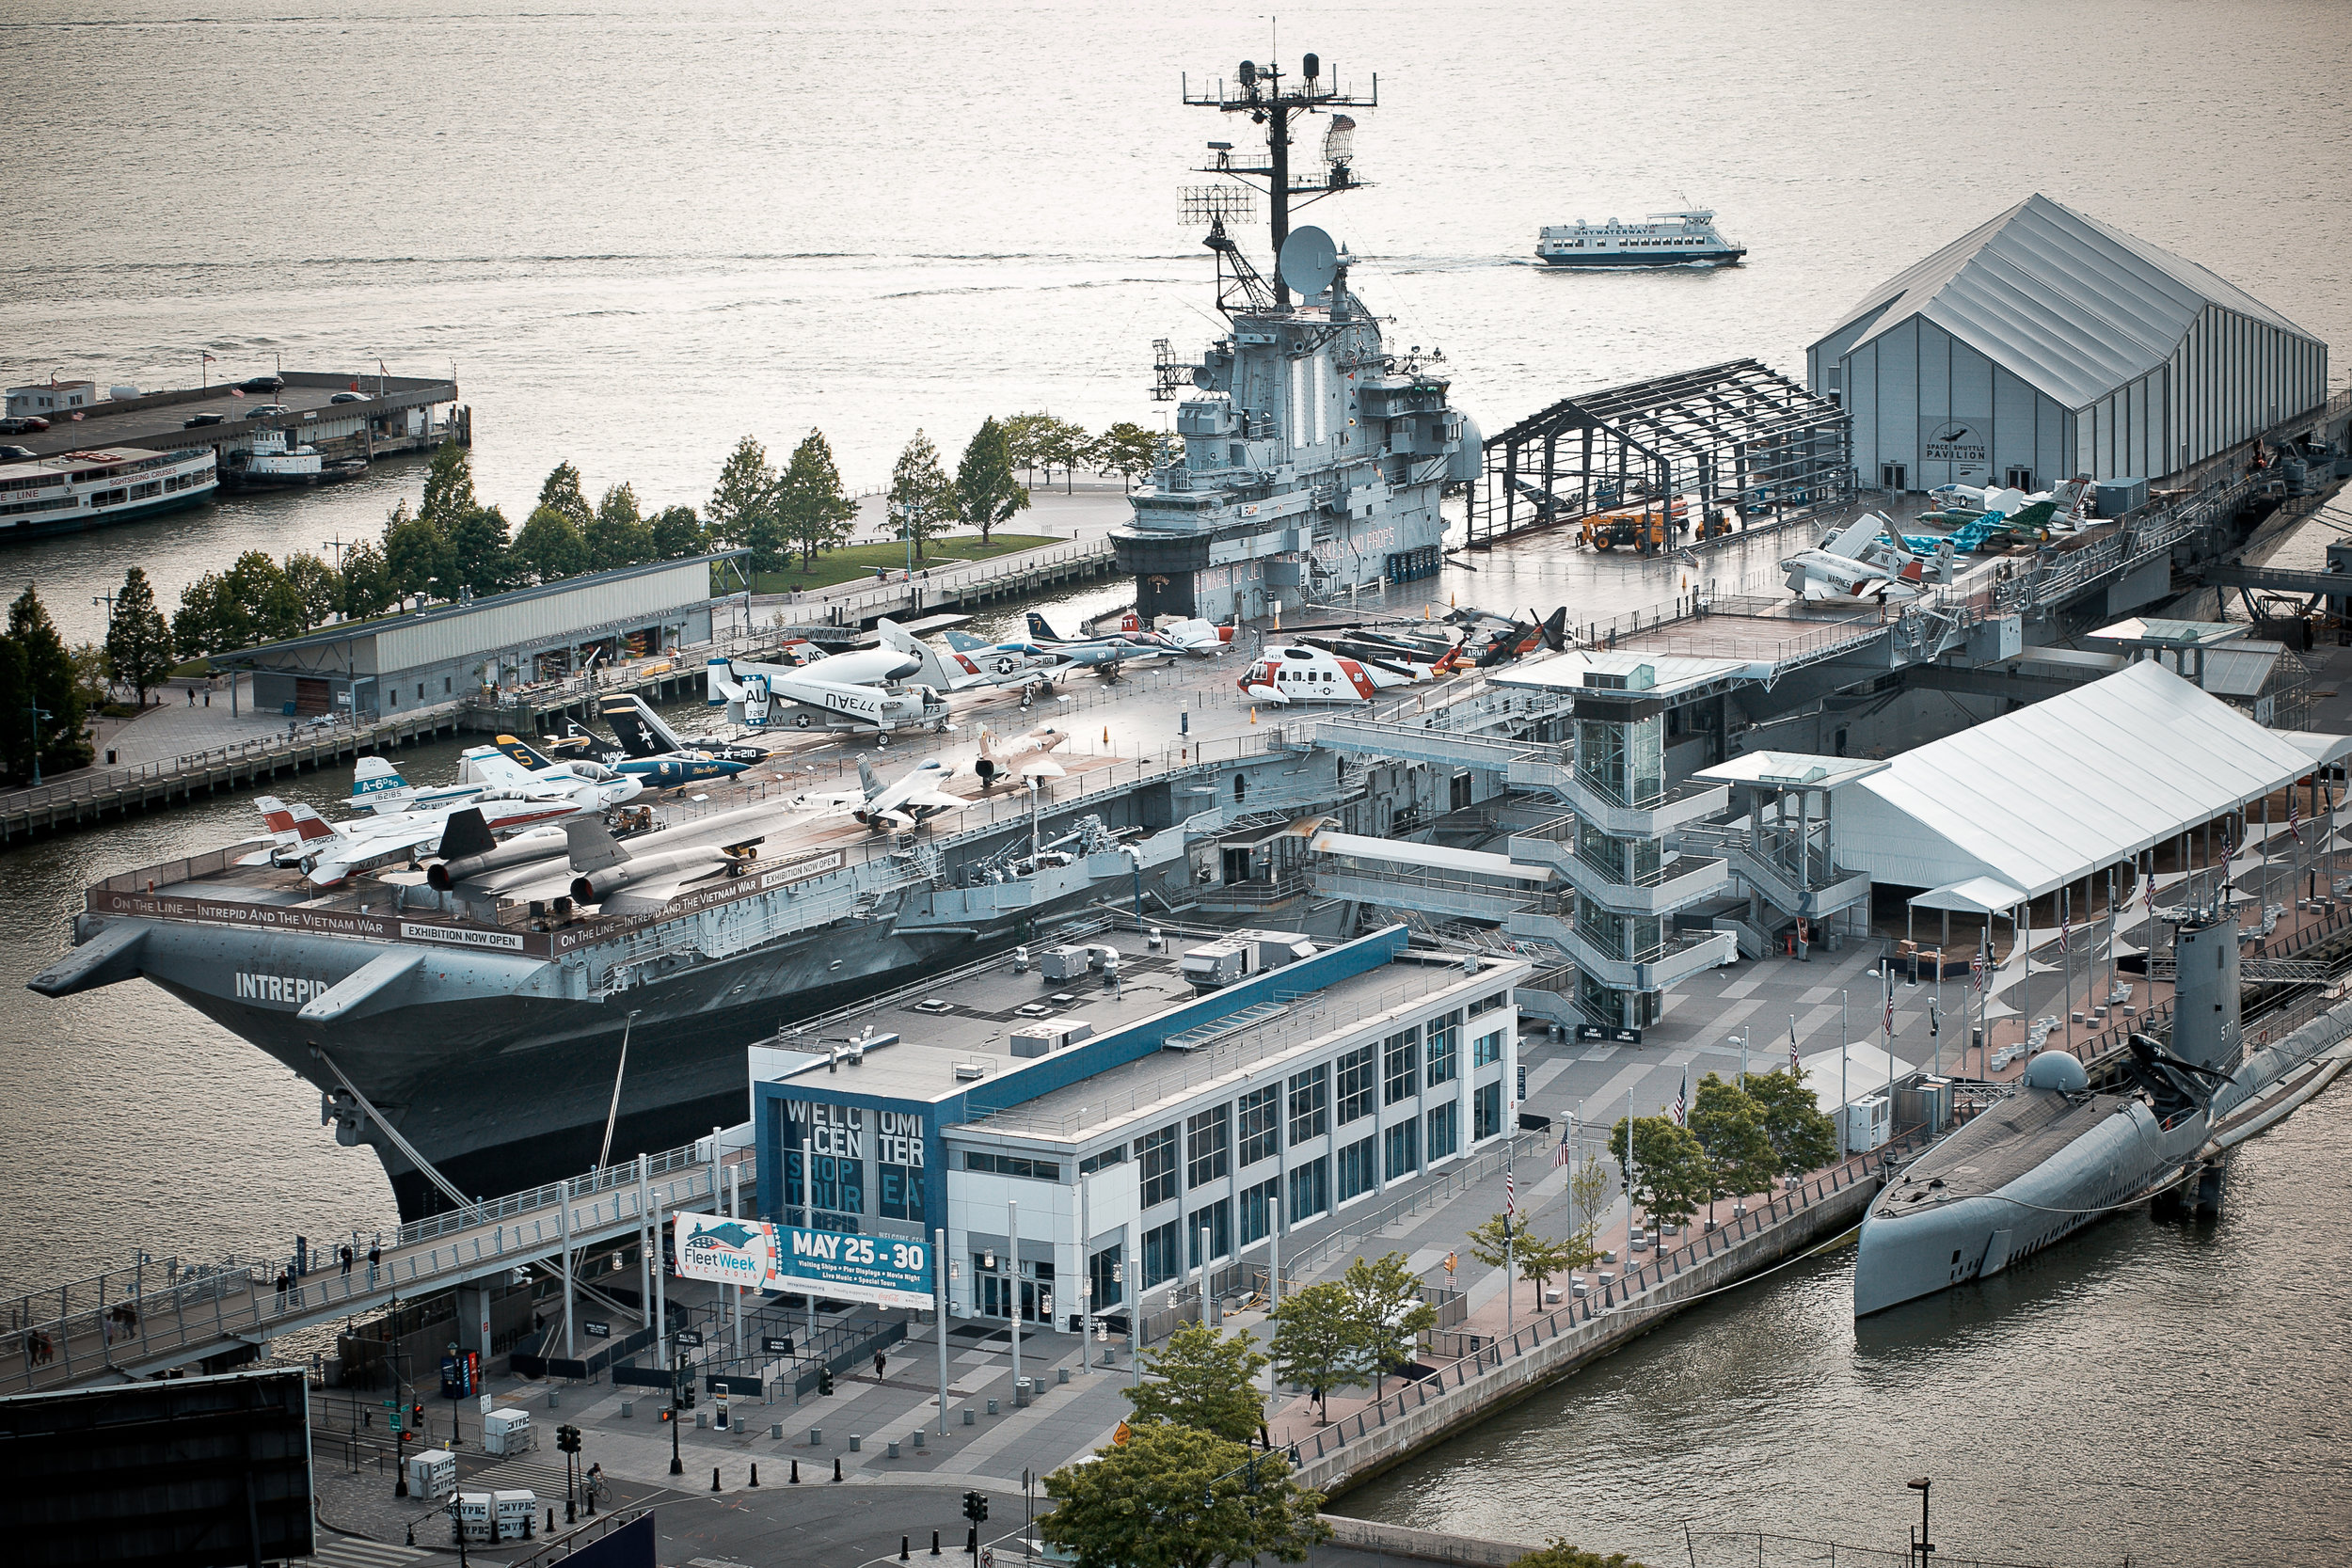 The Intrepid Sea, Air and Space Museum